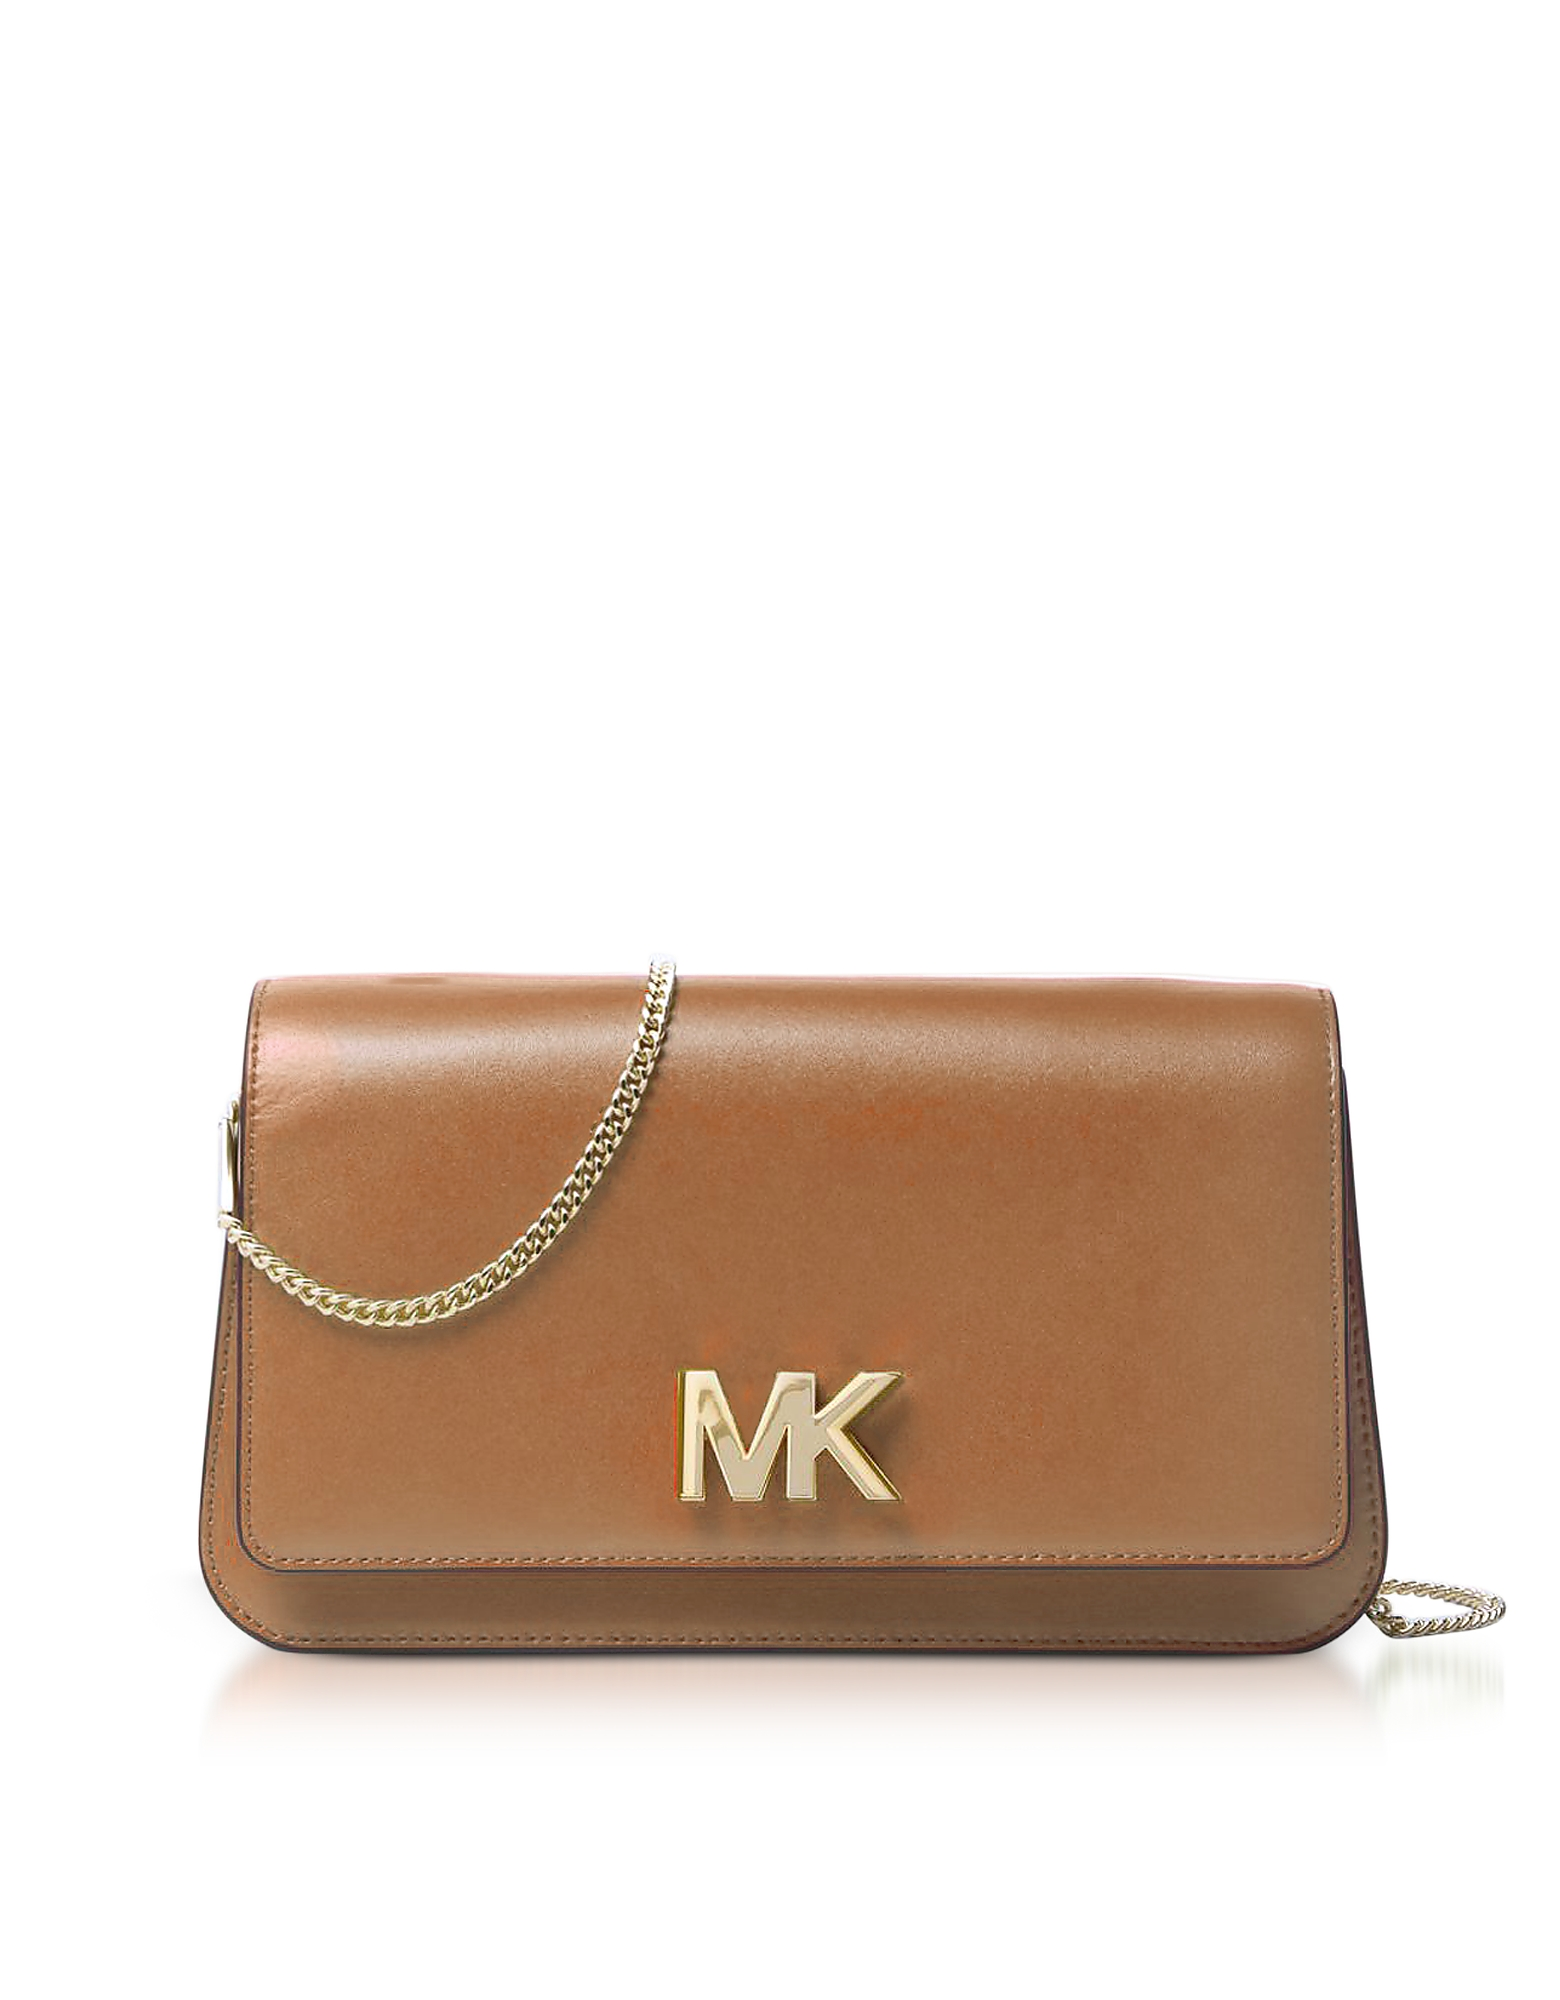 Michael Kors Handbags, Mott Large Acorn Leather Clutch